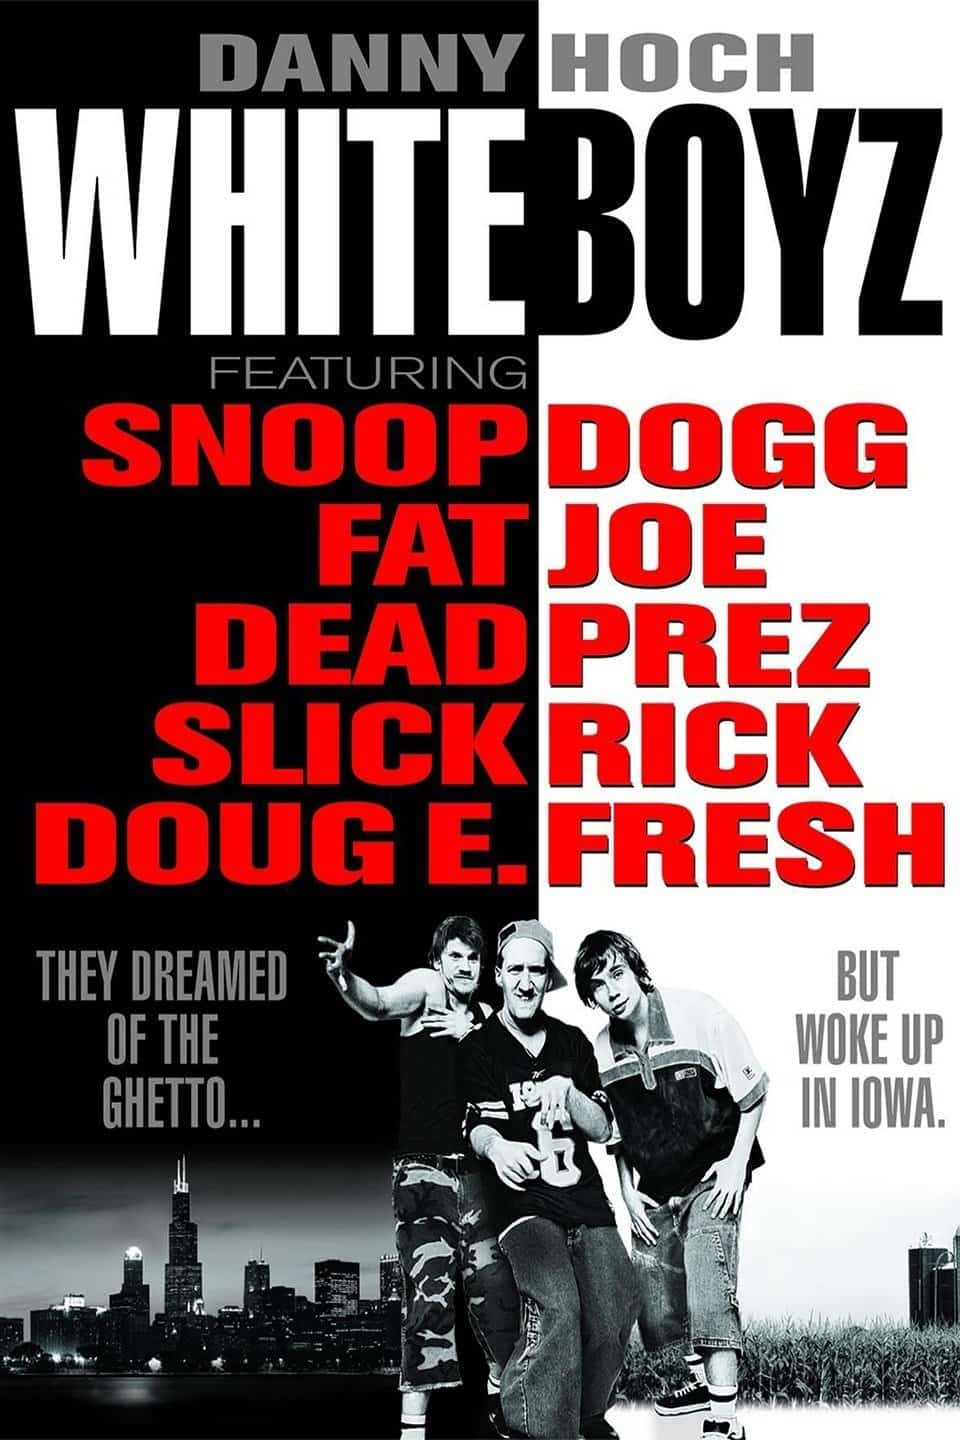 Whiteboyz, 1999